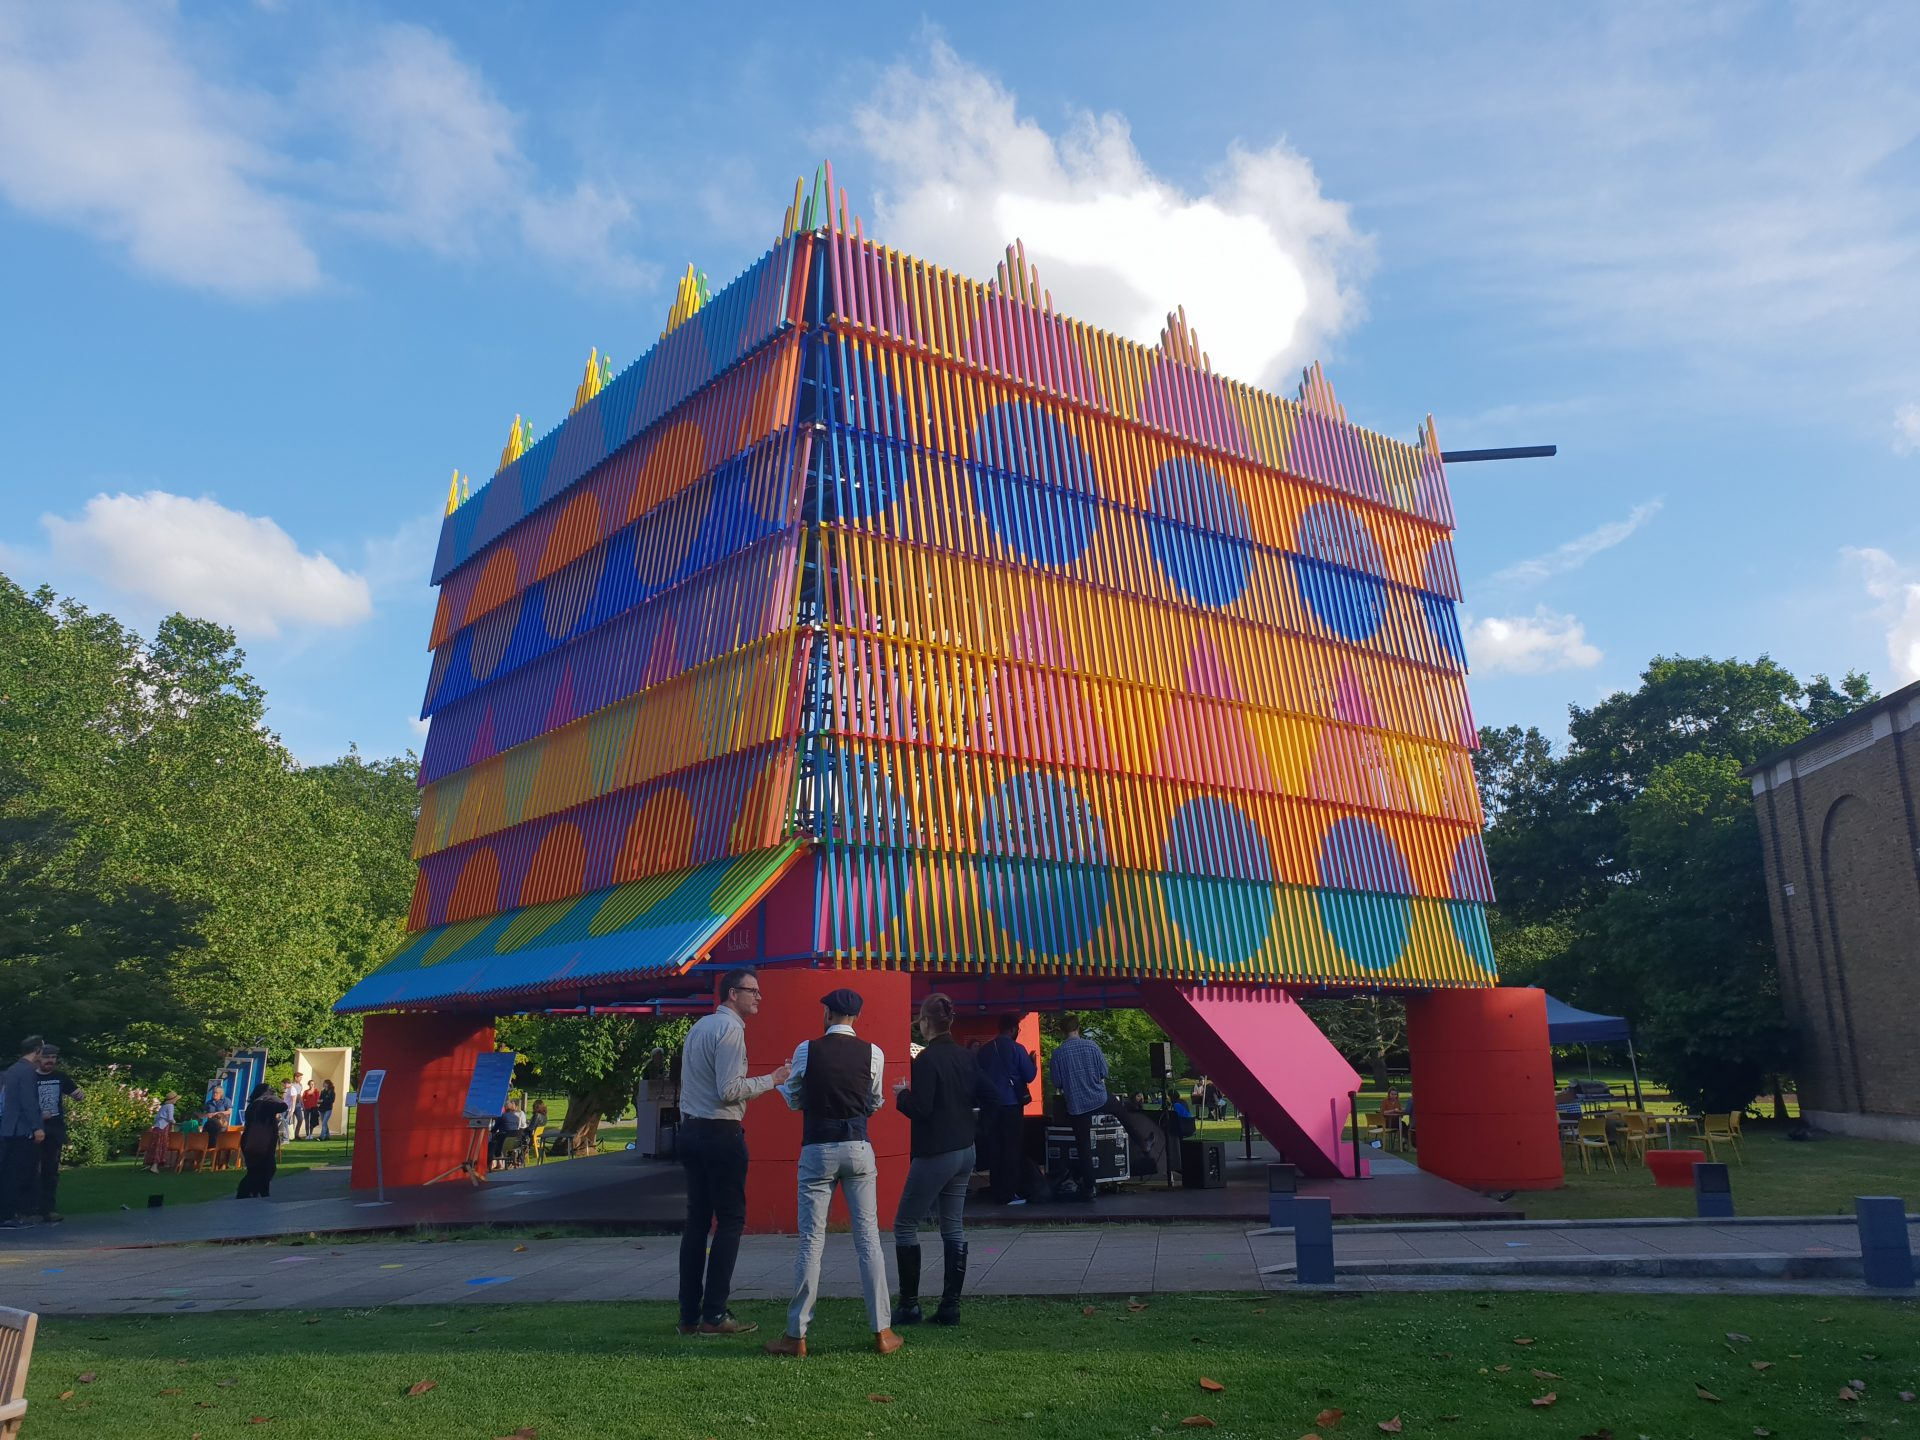 For the love of colour – Visiting Yinka Ilori and Pricegore's 'The Colour Palace'